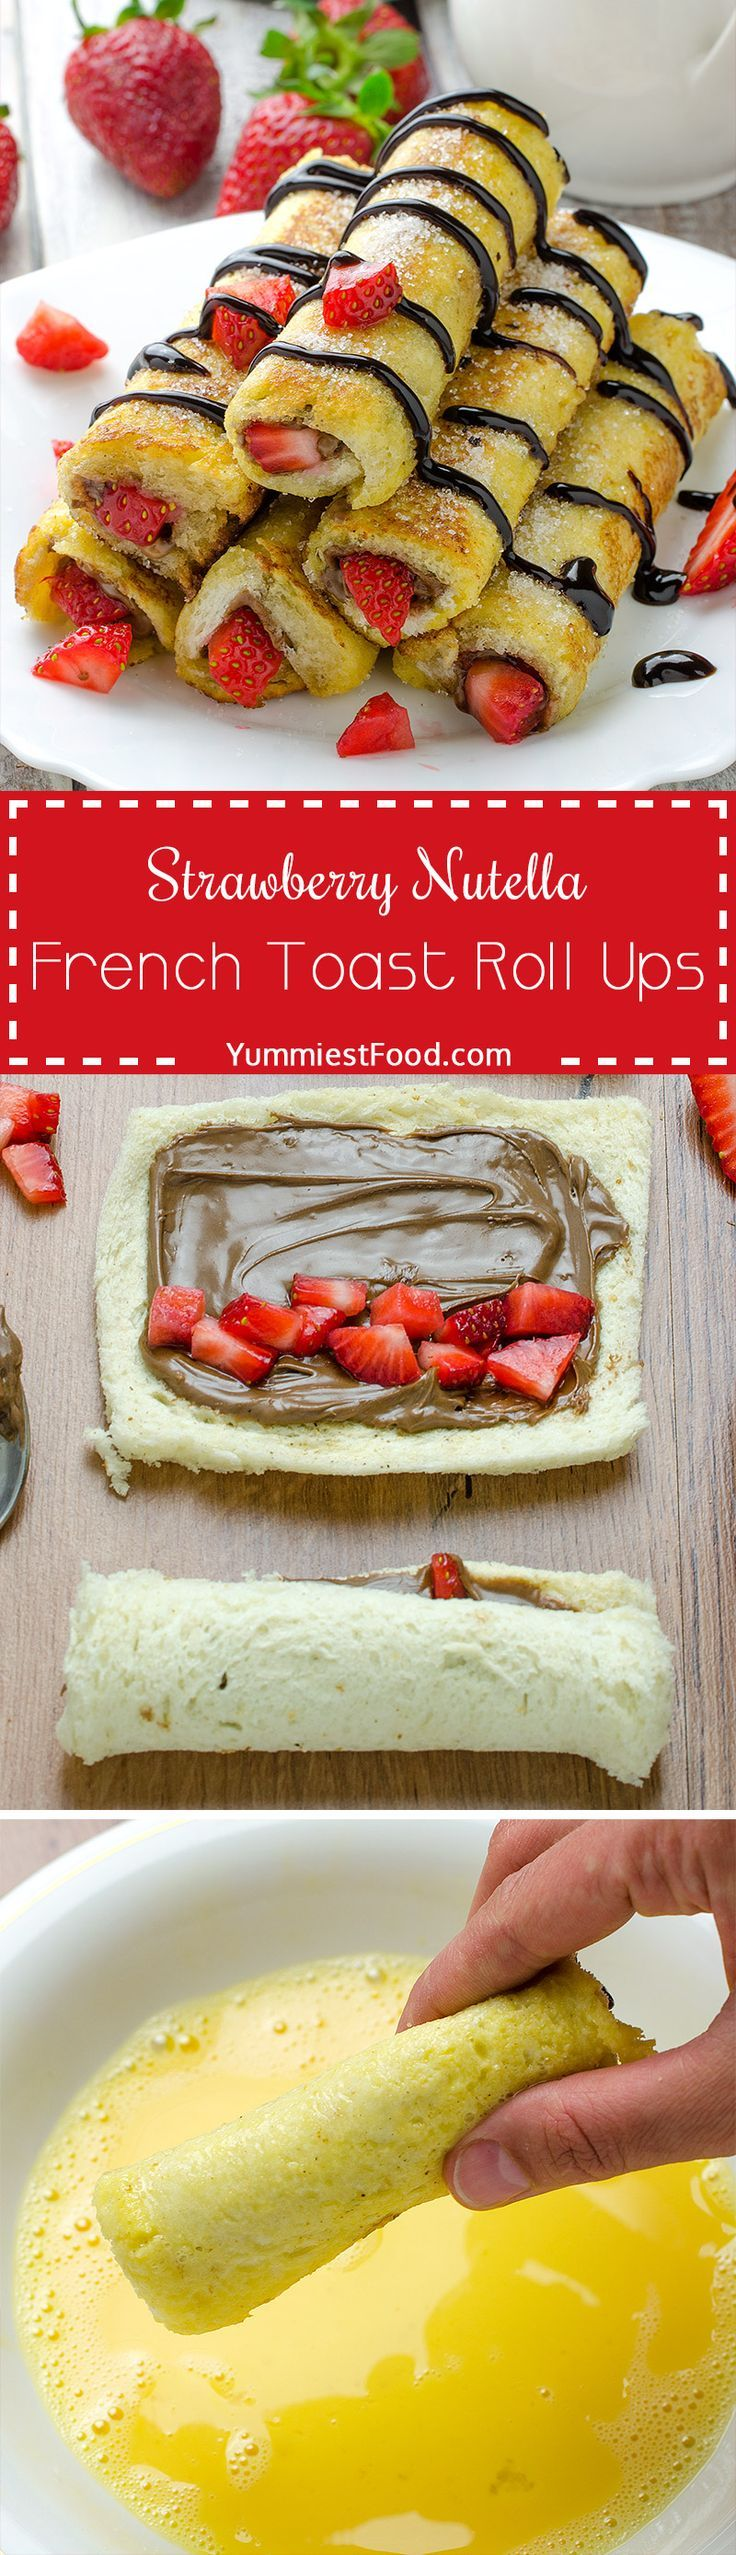 Best 20+ To Make Up Ideas On Pinterest  Easy Food Recipes, Family Recipes  And Breakfast Ideas